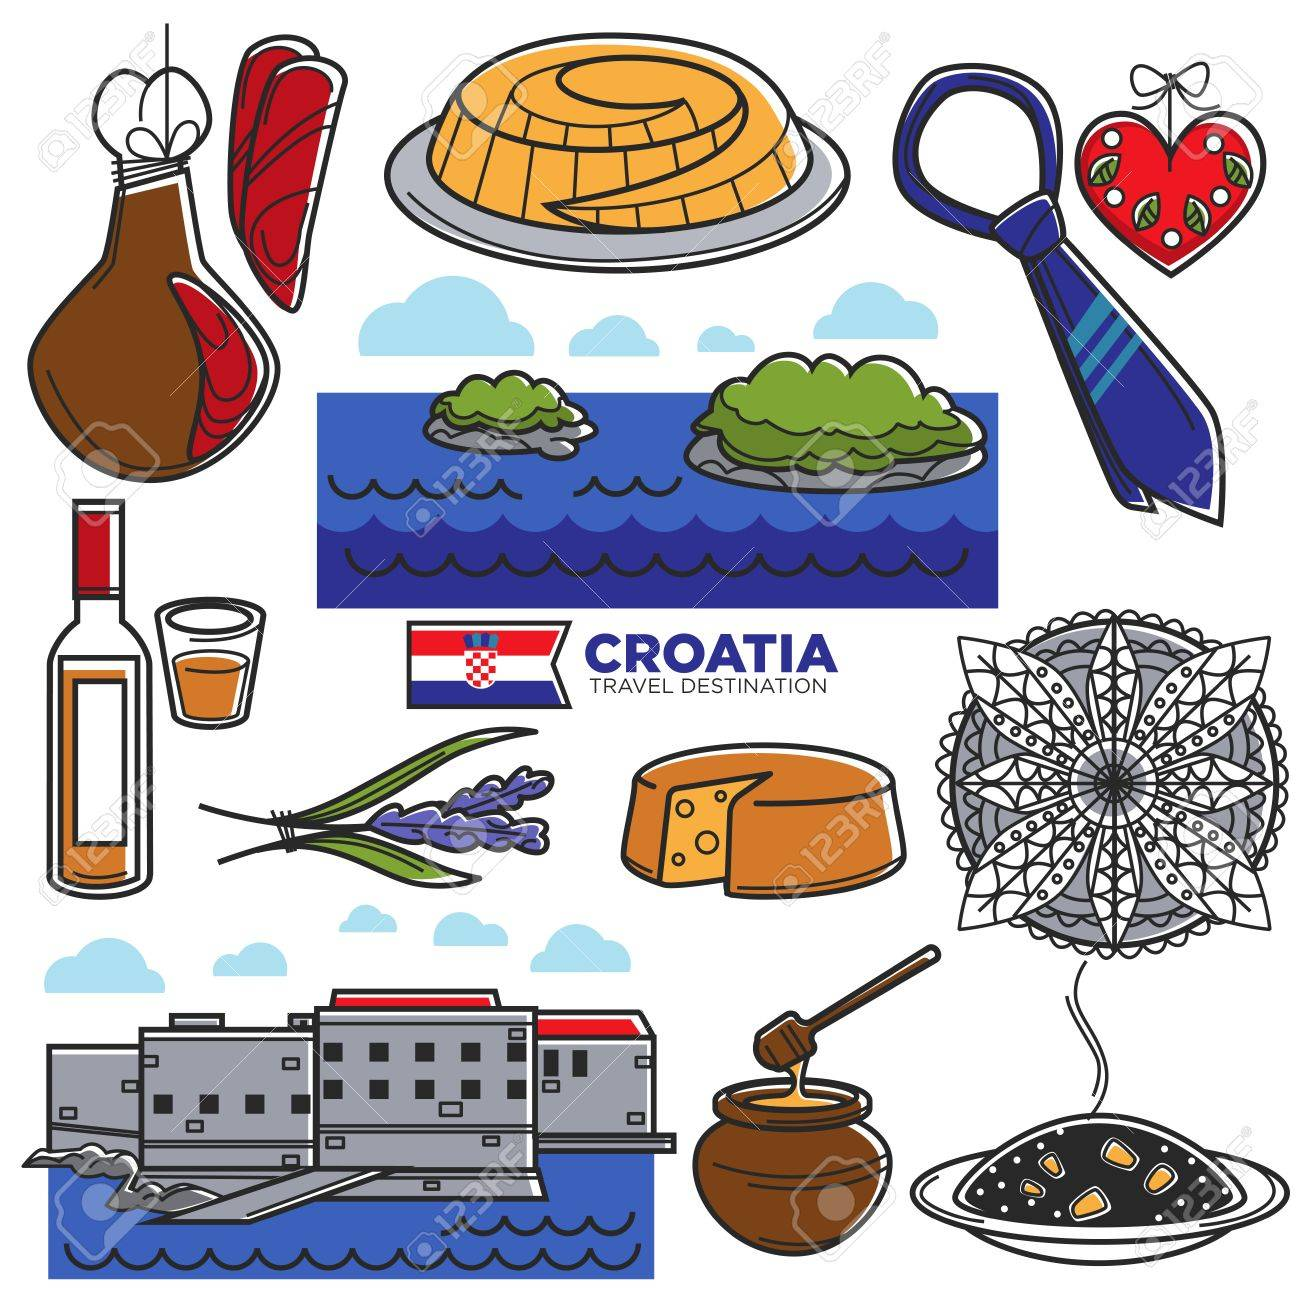 Croatia tourism travel famous symbols and tourist culture croatia tourism travel famous symbols and tourist culture landmarks vector icons stock vector 87484899 biocorpaavc Image collections